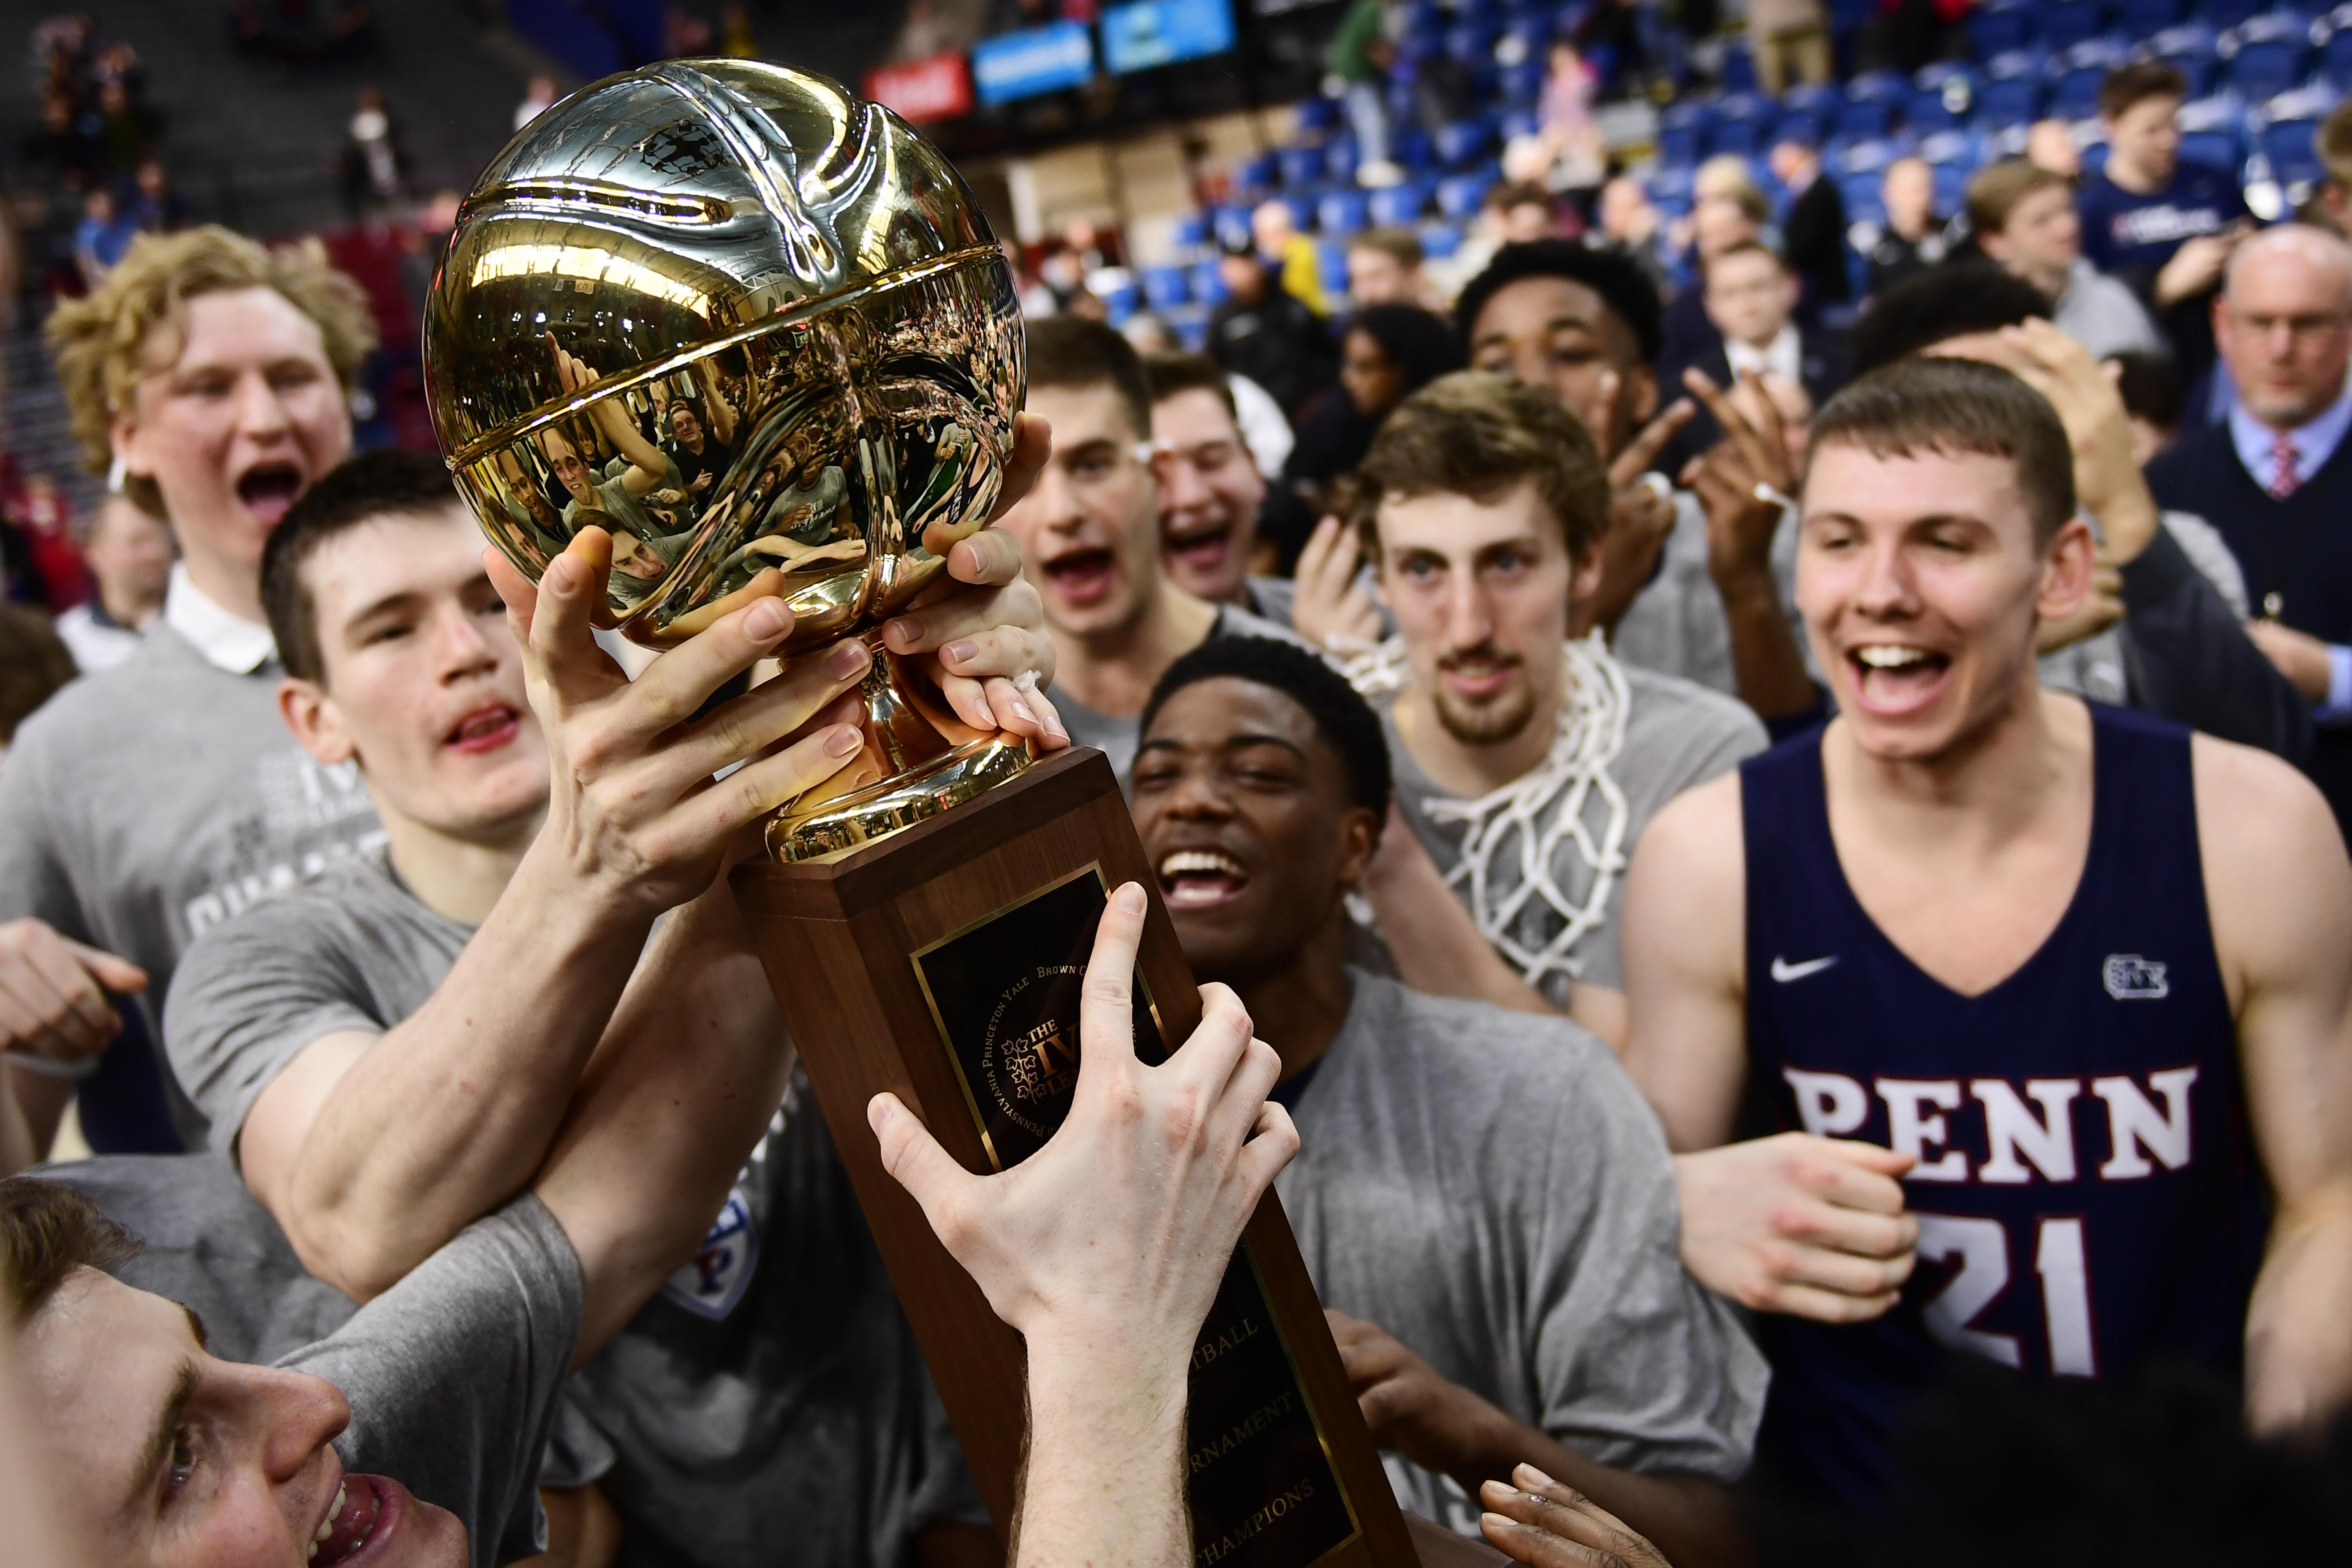 PHILADELPHIA, PA - MARCH 11: The Pennsylvania Quakers men's basketball team hold up the championship trophy after winning the Men's Ivy League Championship Tournament at The Palestra on March 11, 2018 in Philadelphia, Pennsylvania. Penn defeated Harvard 68-65. (Photo by Corey Perrine/Getty Images)